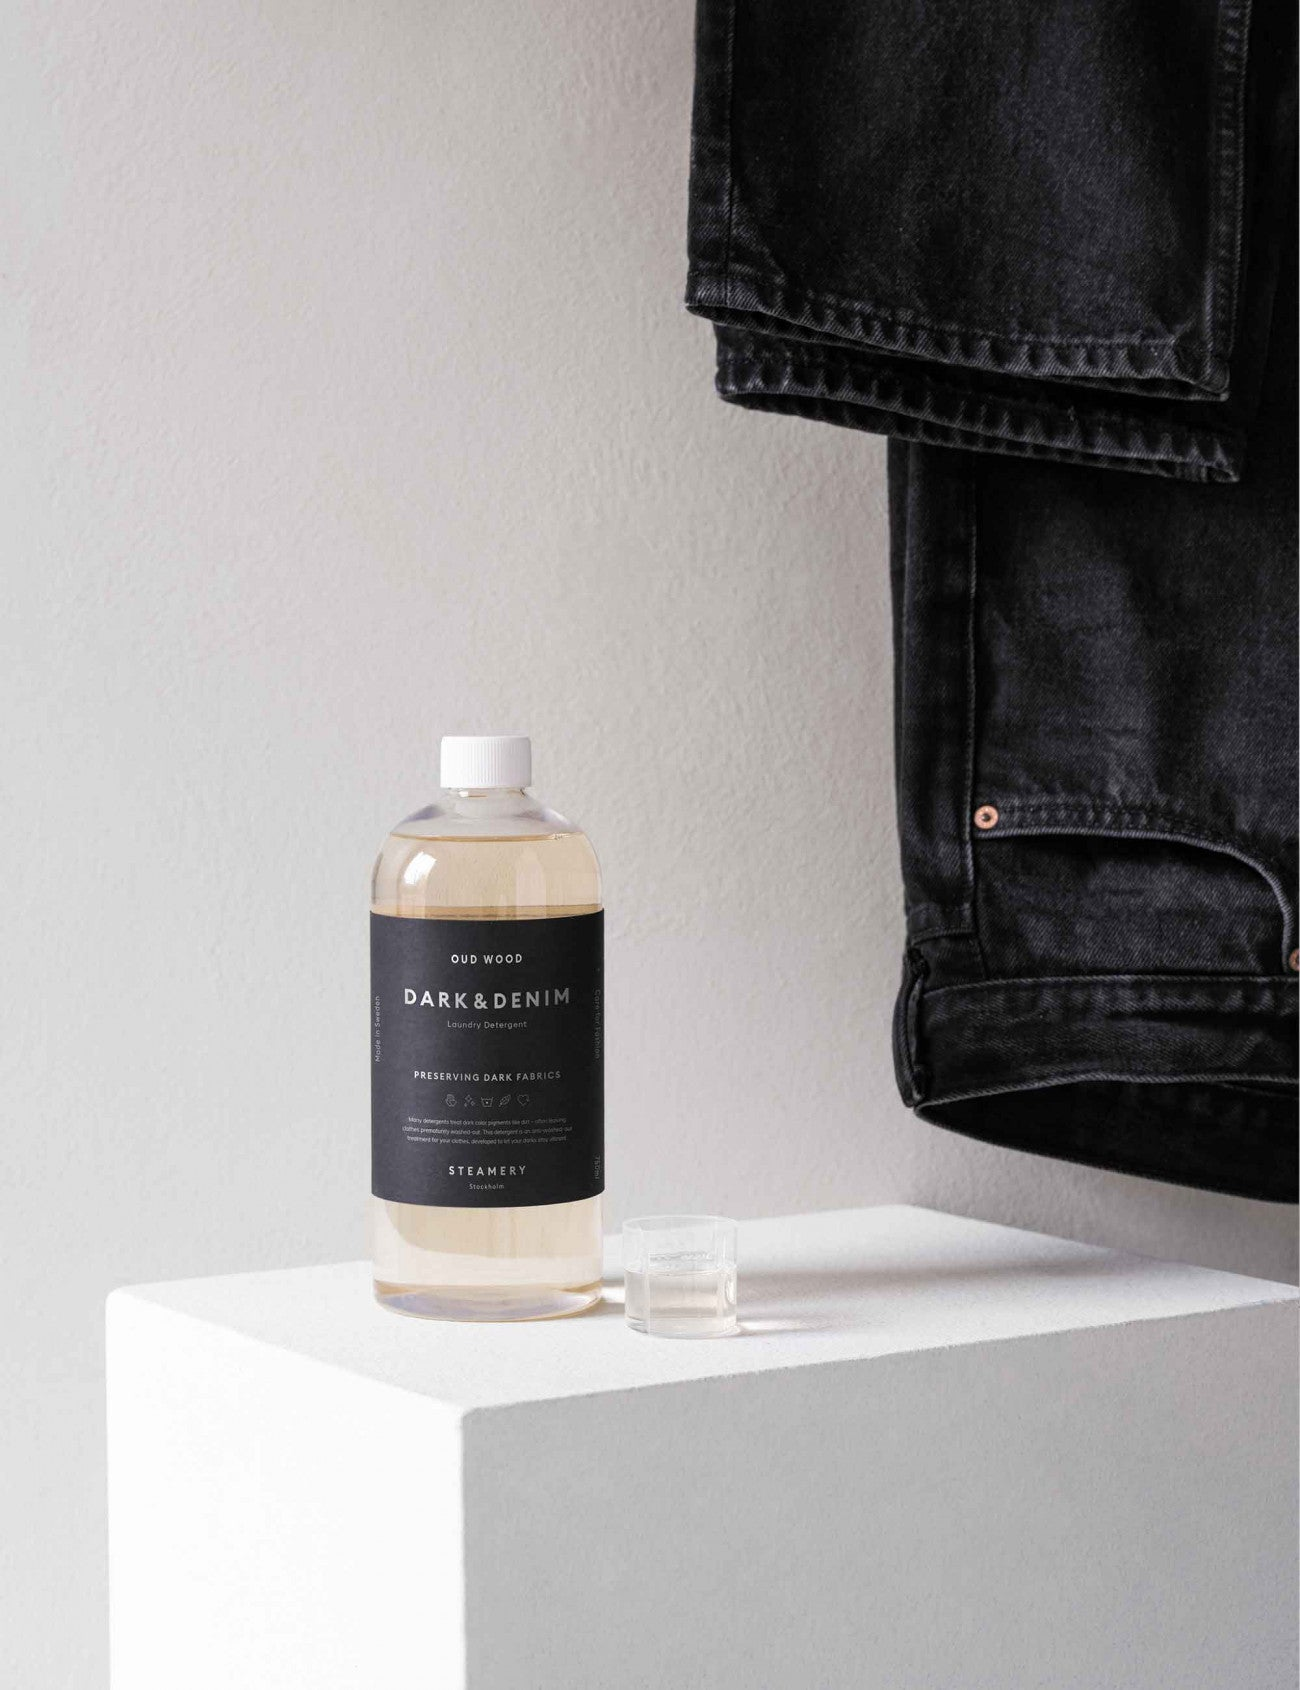 Dark & Denim Wash Detergent